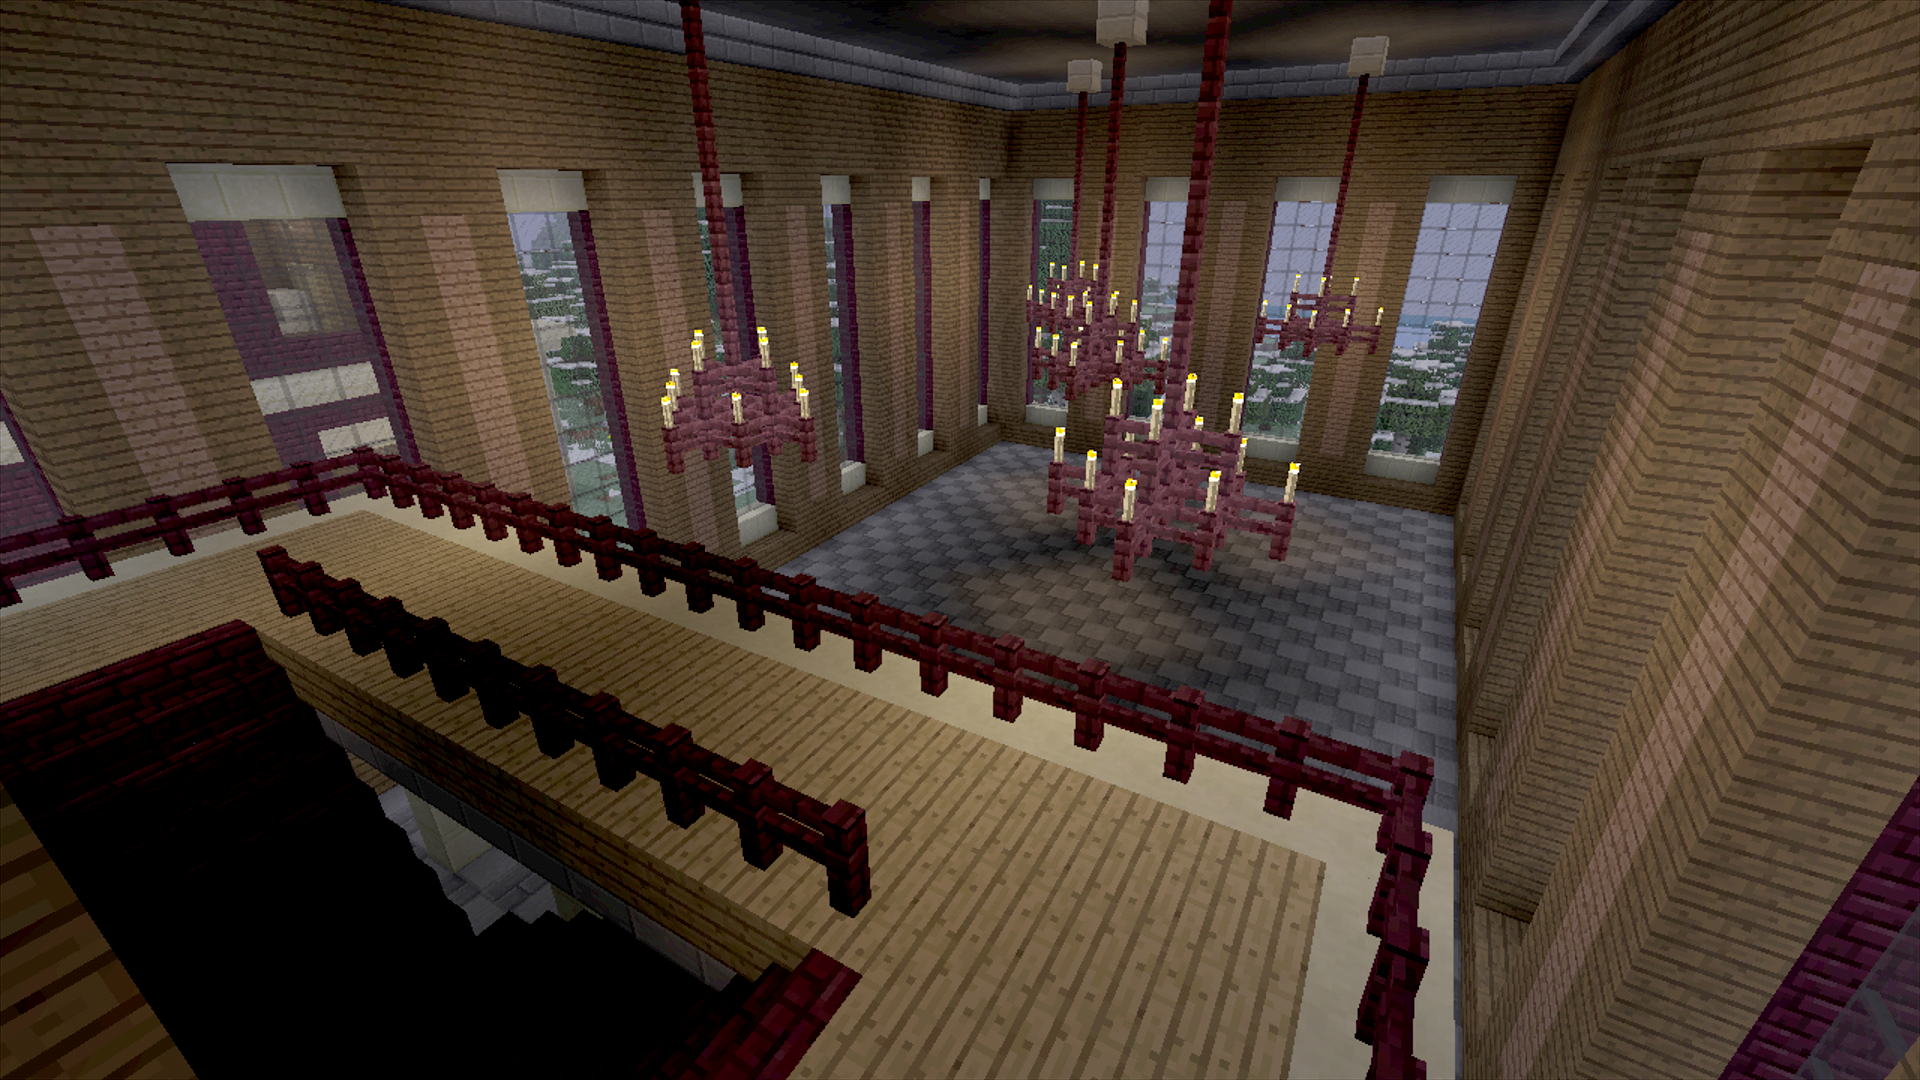 In Blood Ties, if you look out the windows, you can see other structures in Croft Manor that you can't reach. Those rooms have to be filled with something! I'd like to think this was a ballroom.